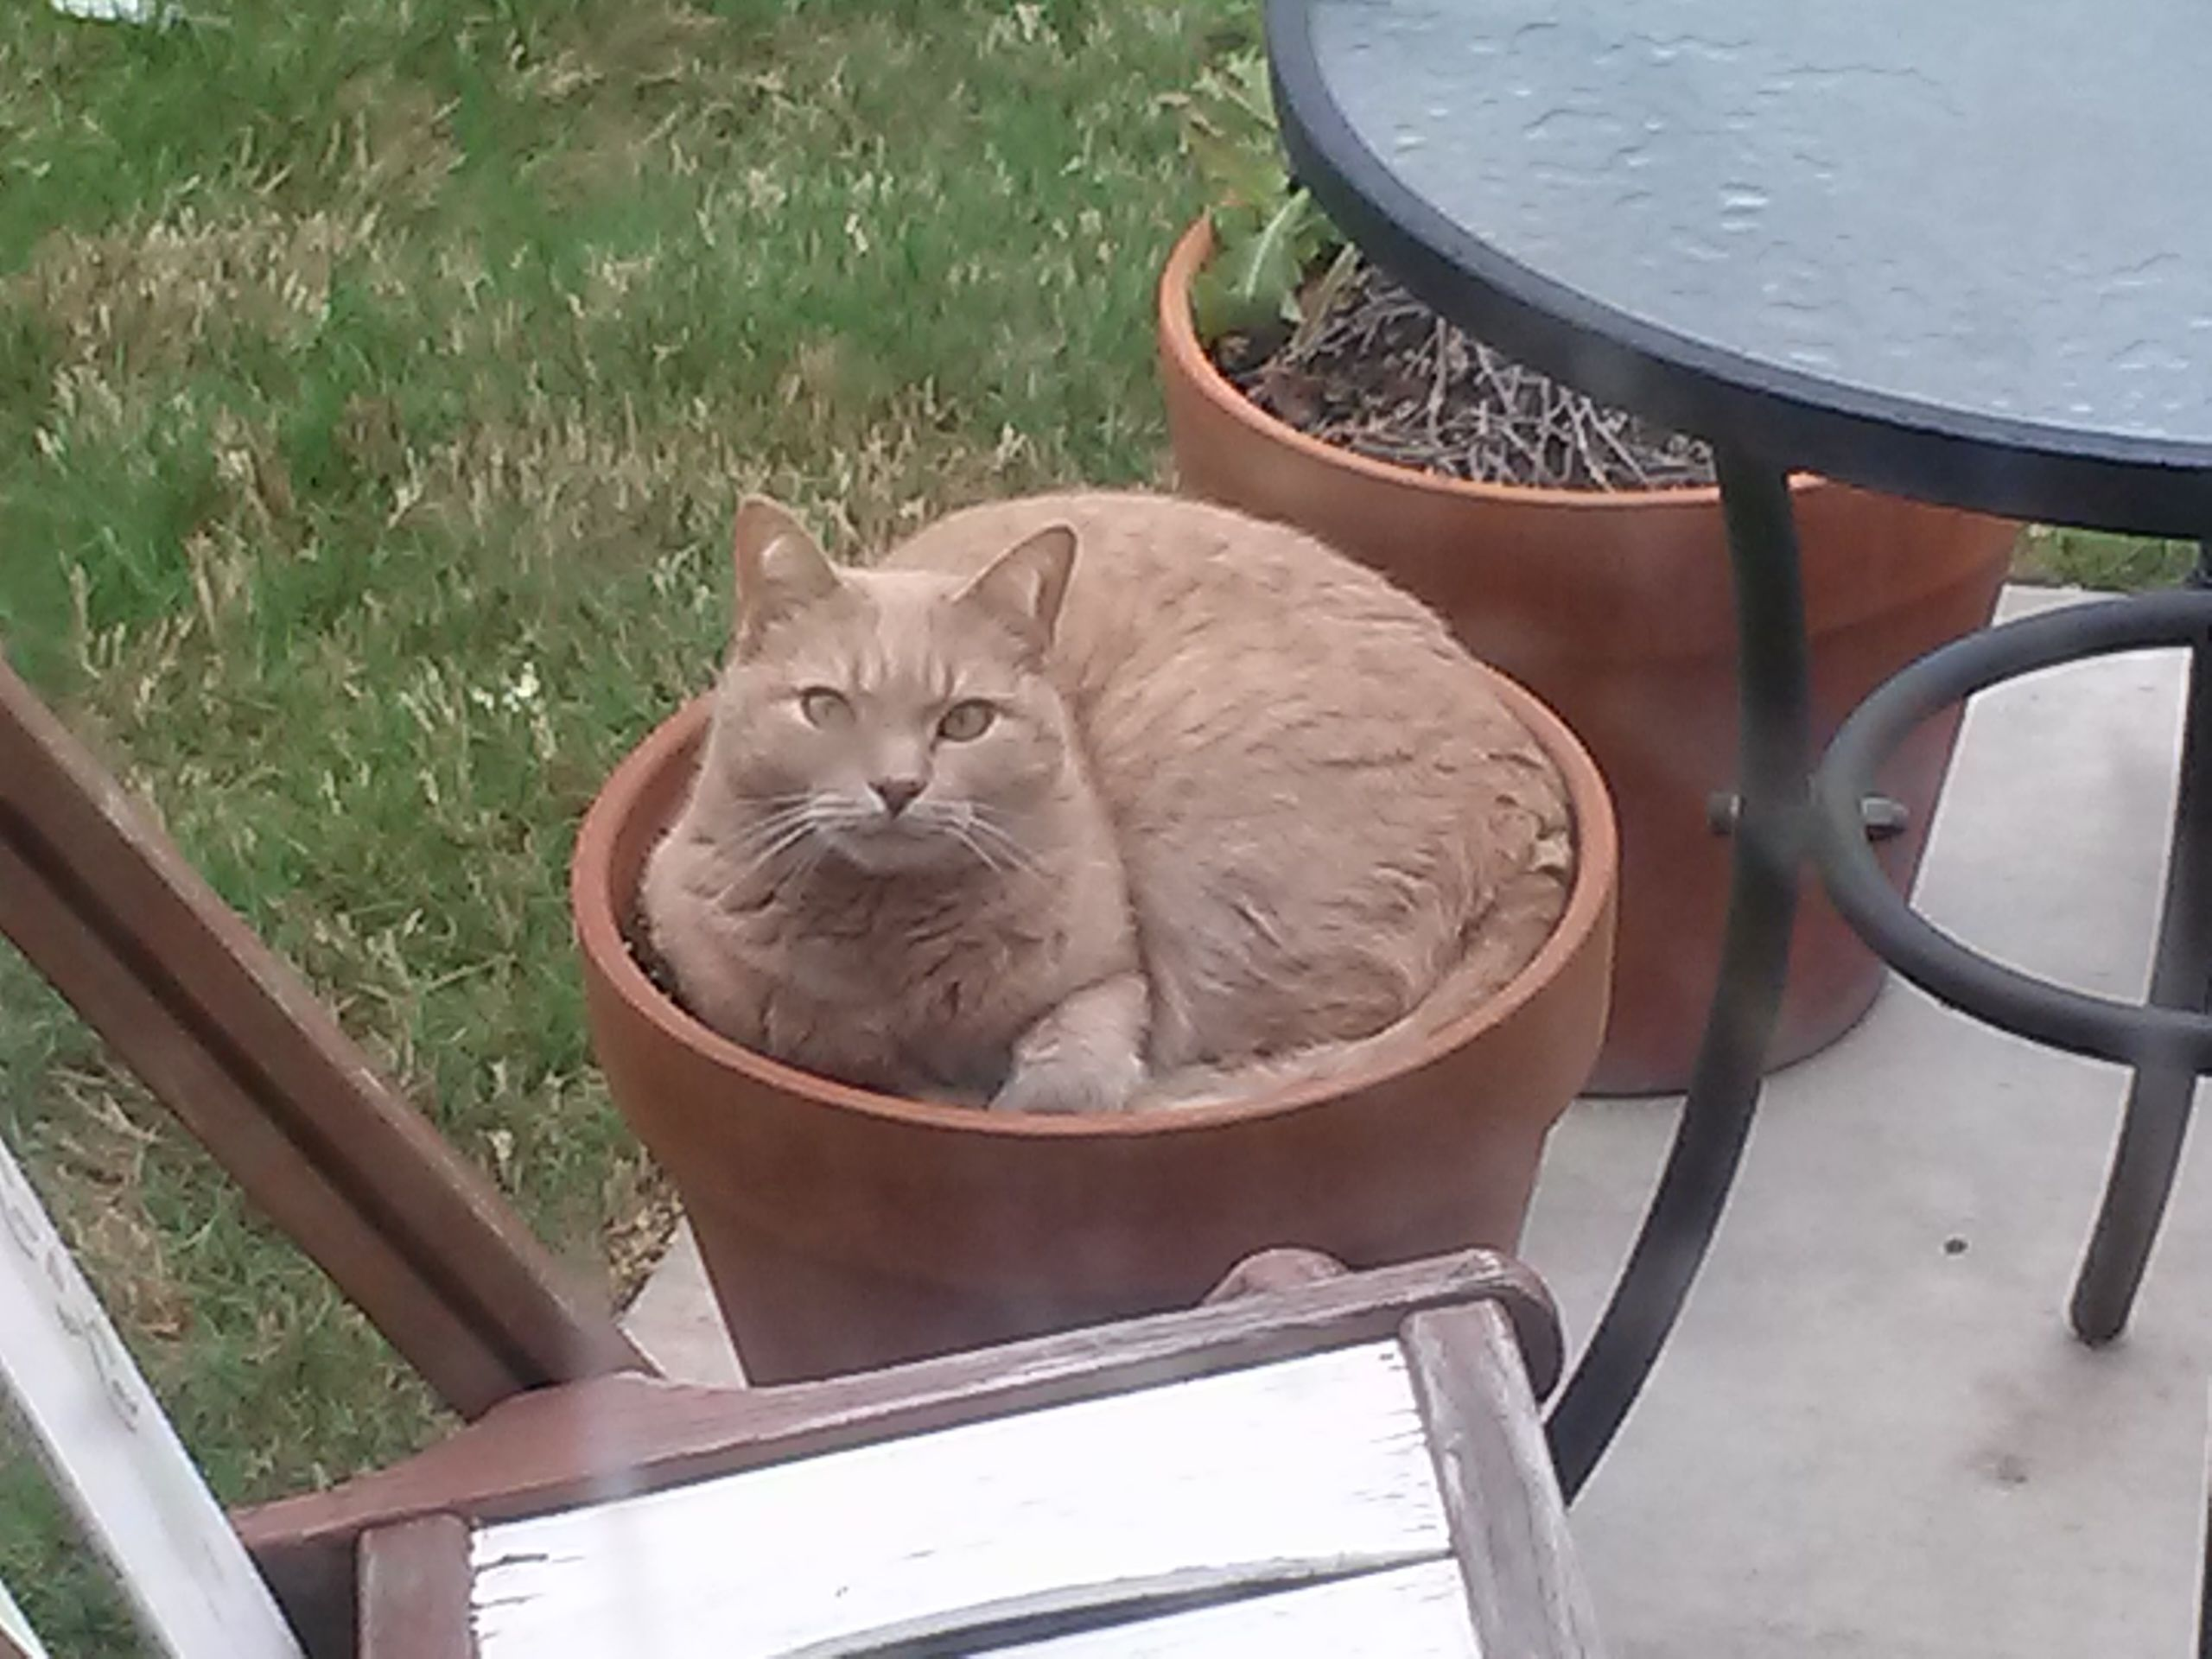 He sprouted after our first spring rain